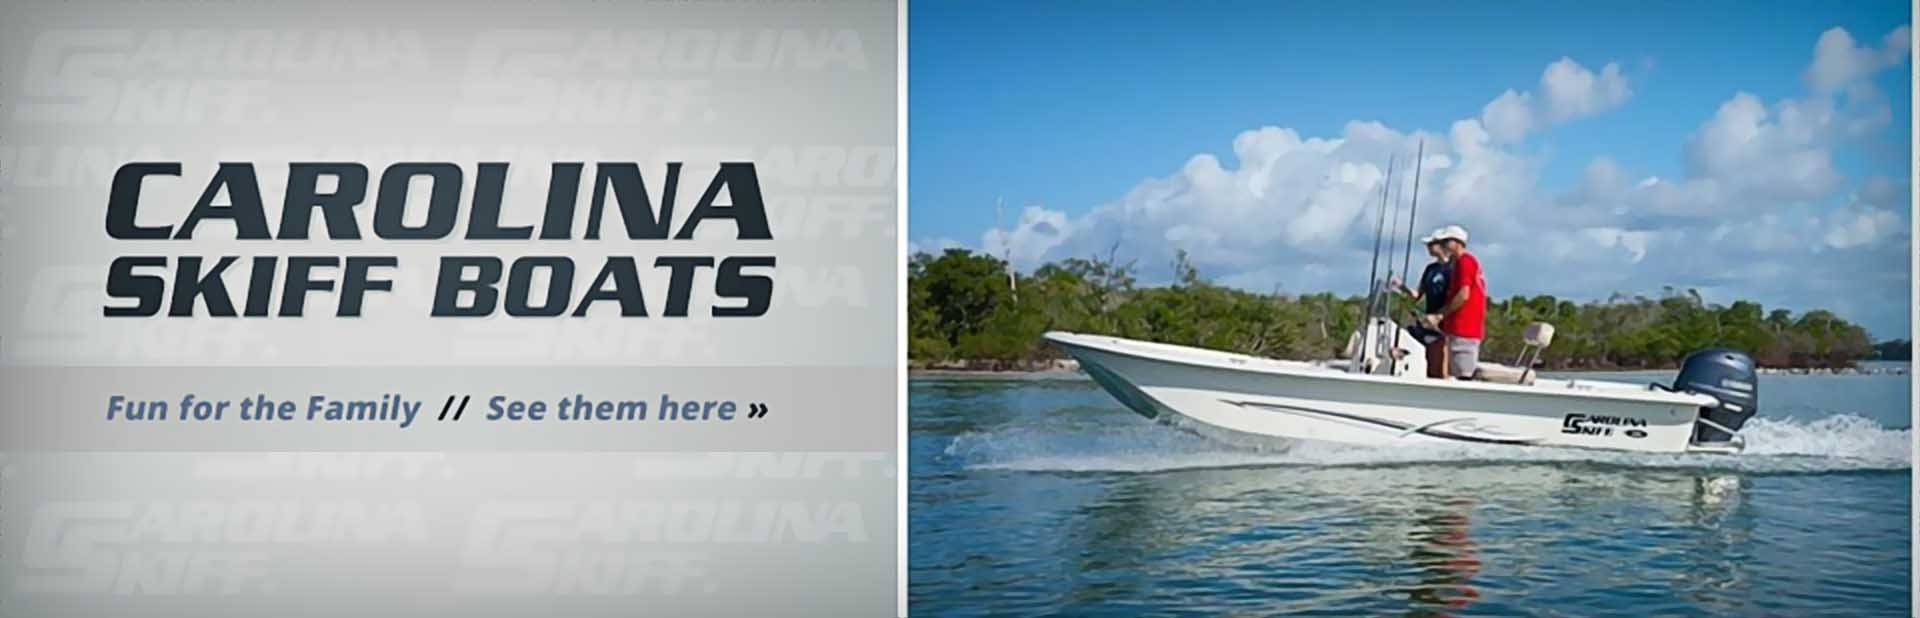 Carolina Skiff Boats: Click here to view the models.